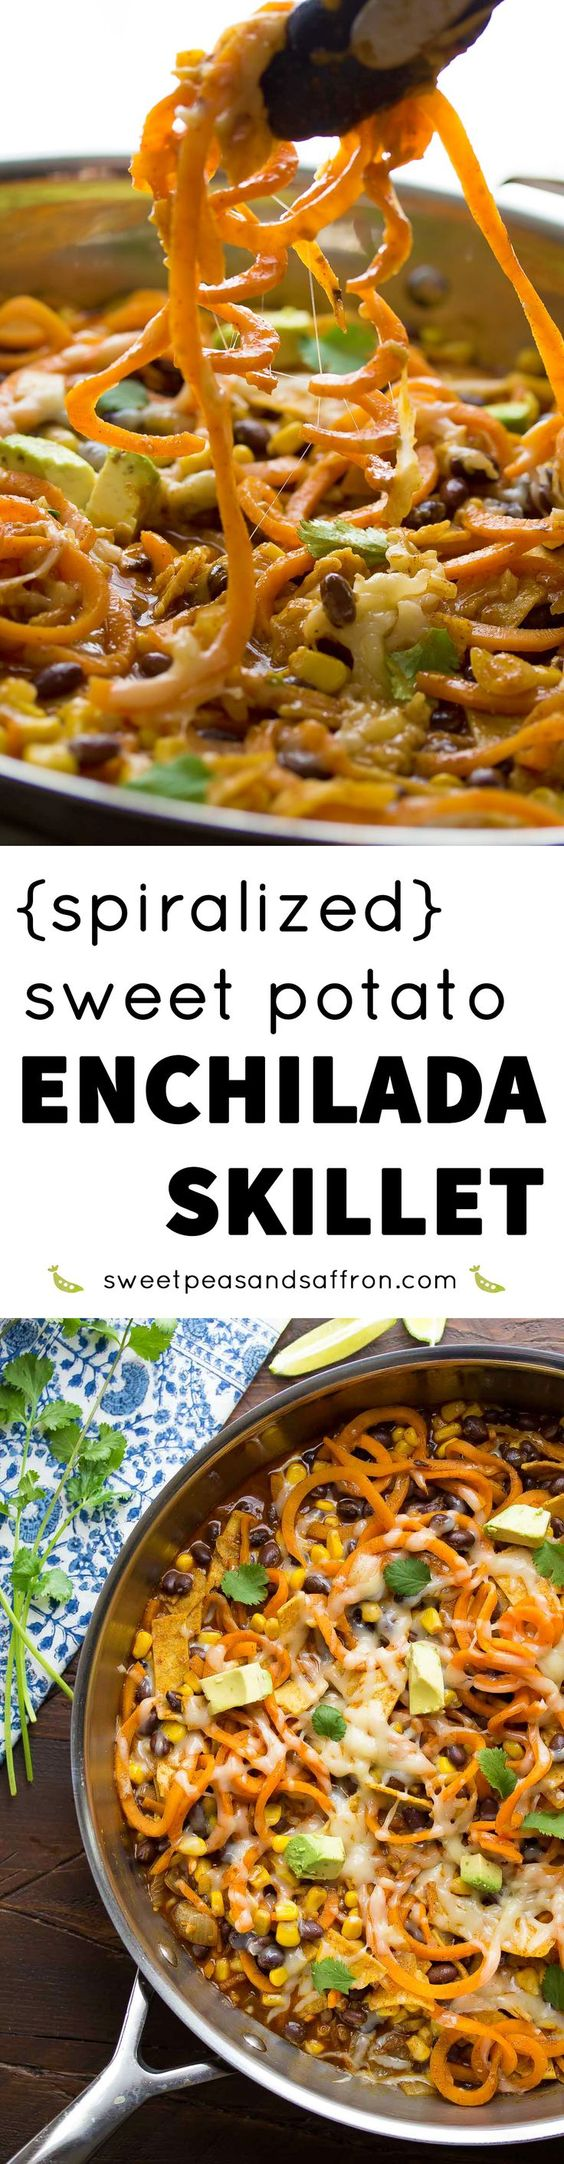 Spiralized Sweet Potato Enchilada Skillet, an easy vegetarian dinner ...